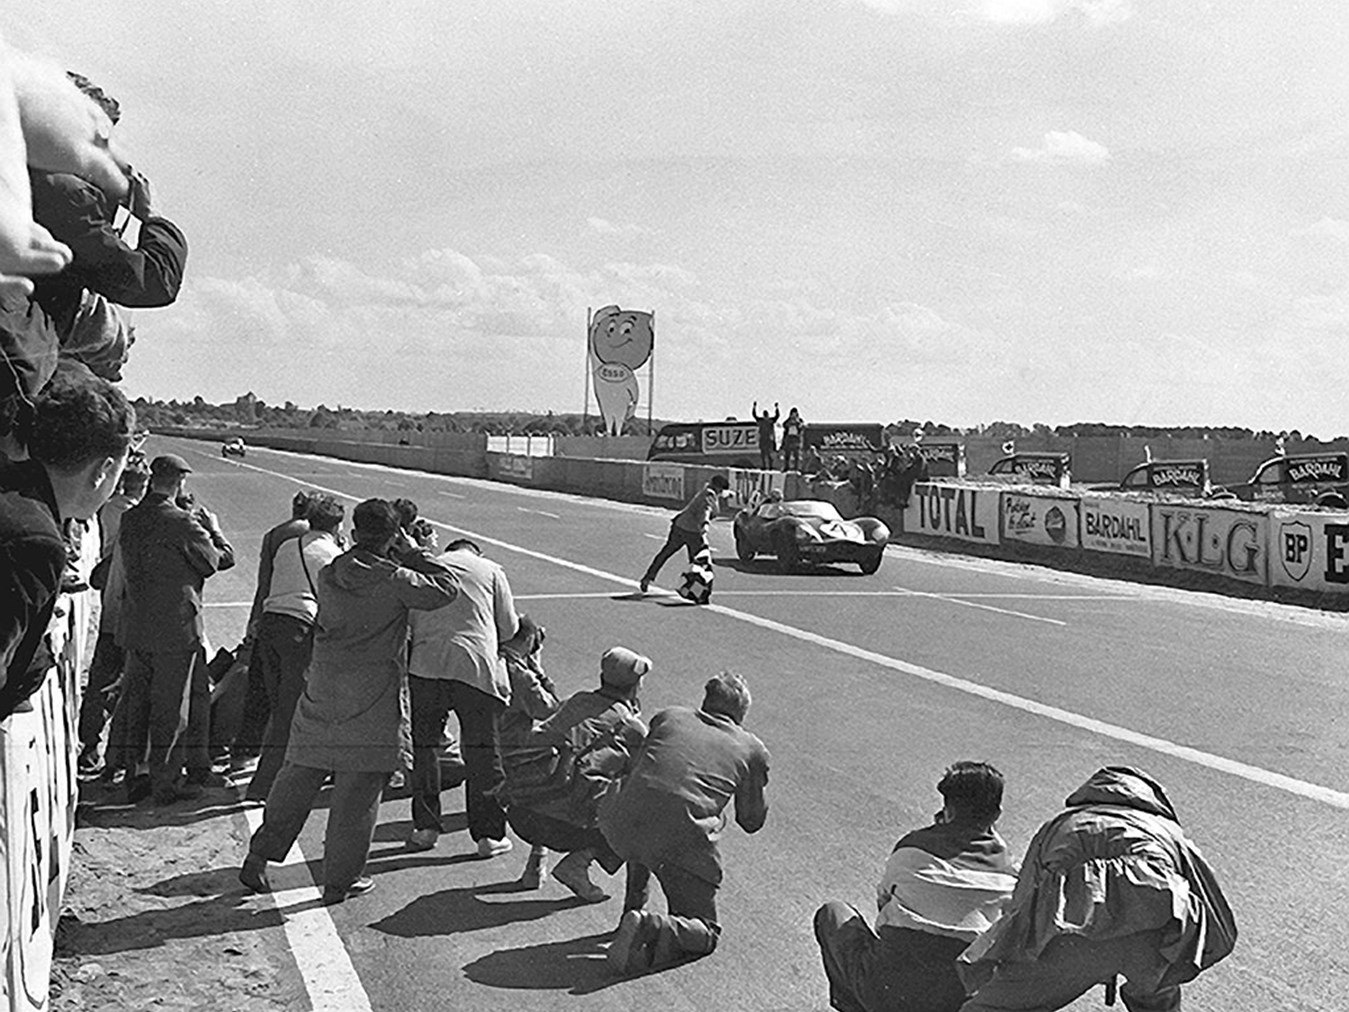 XKD 501 takes the checkered flag at the 1956 24 Hours of Le Mans.